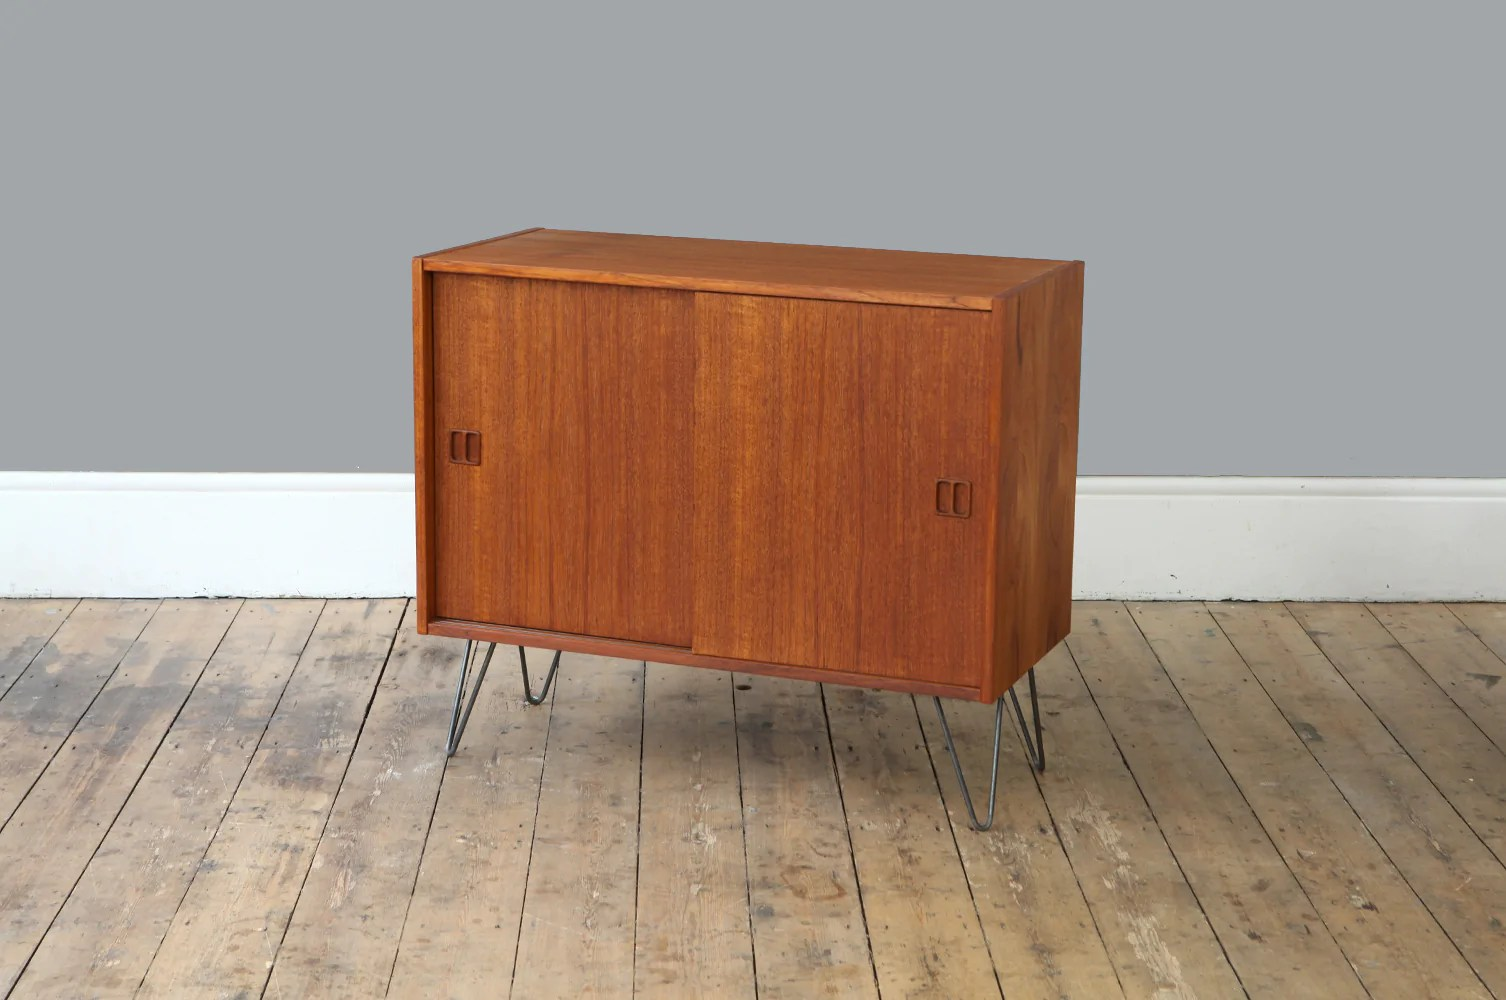 Vintage Sideboard Hairpin Legs Danish Teak Sideboard With Hairpin Legs Forest London